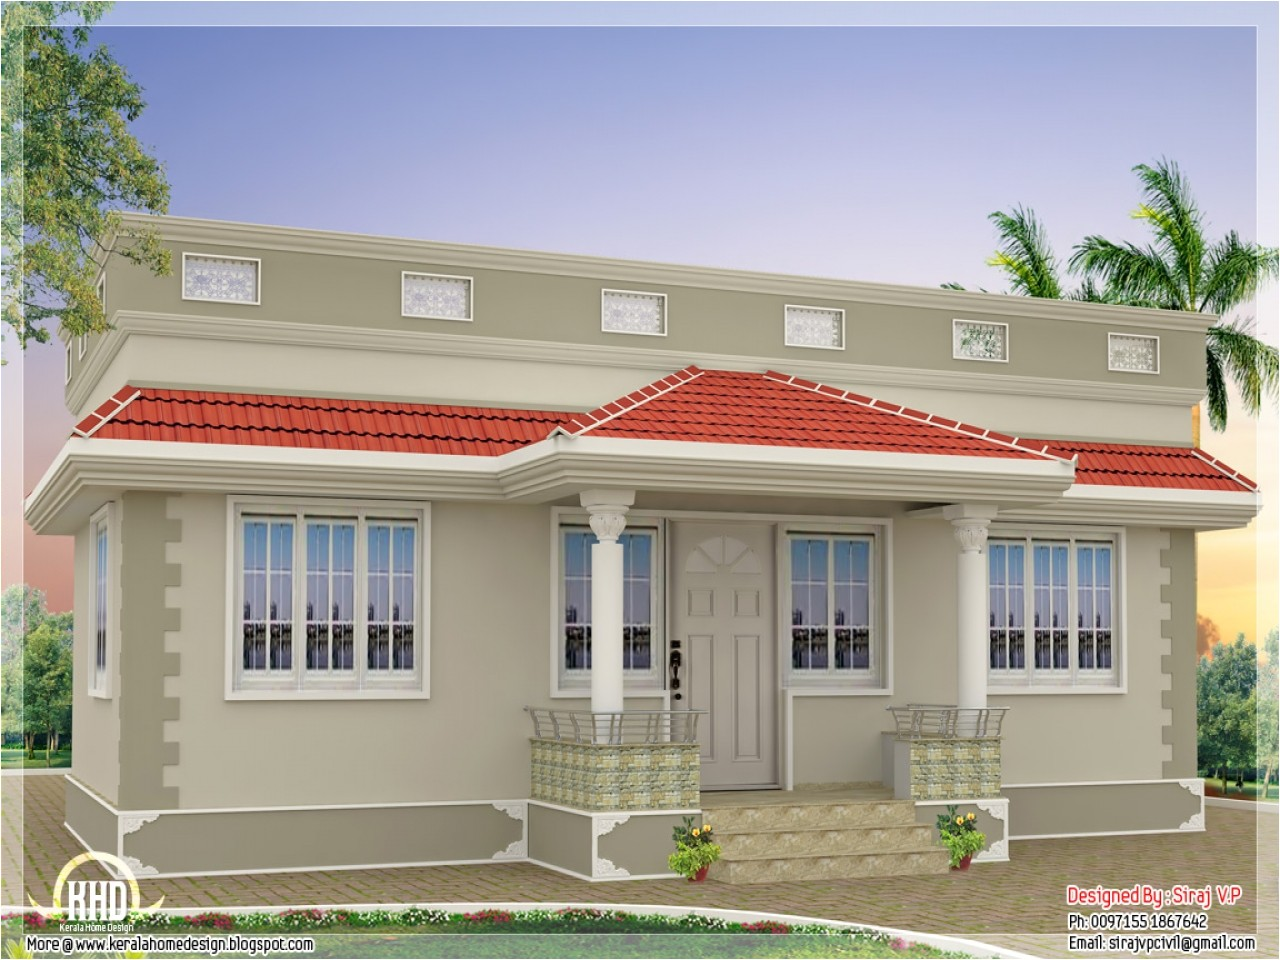 015993e692e9ce41 kerala style single floor house plan kerala home design